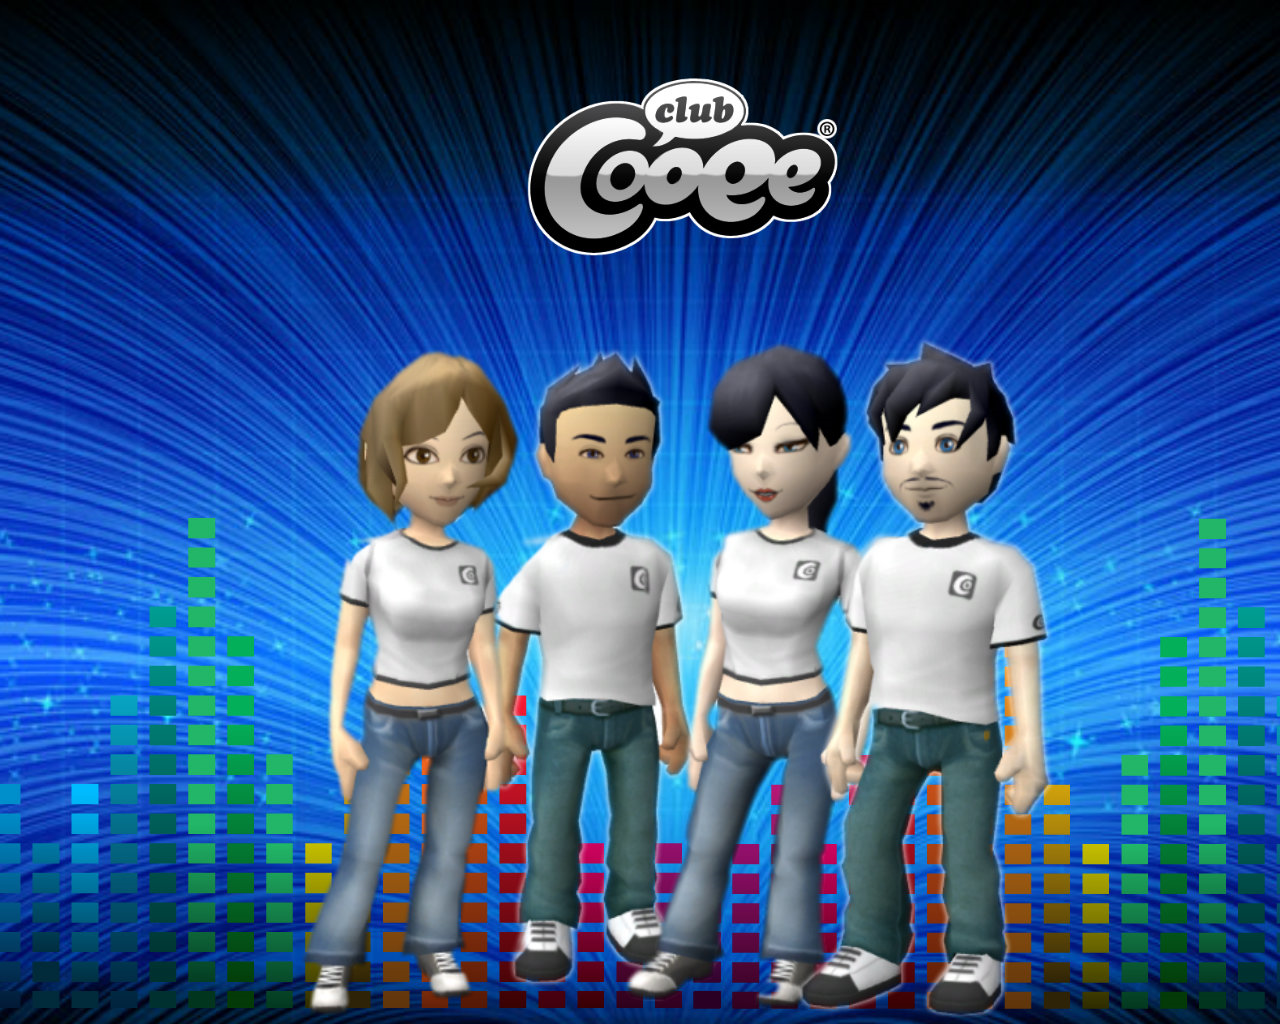 Club Cooee Store - Fan Gear, Guides, Gift Certificates and